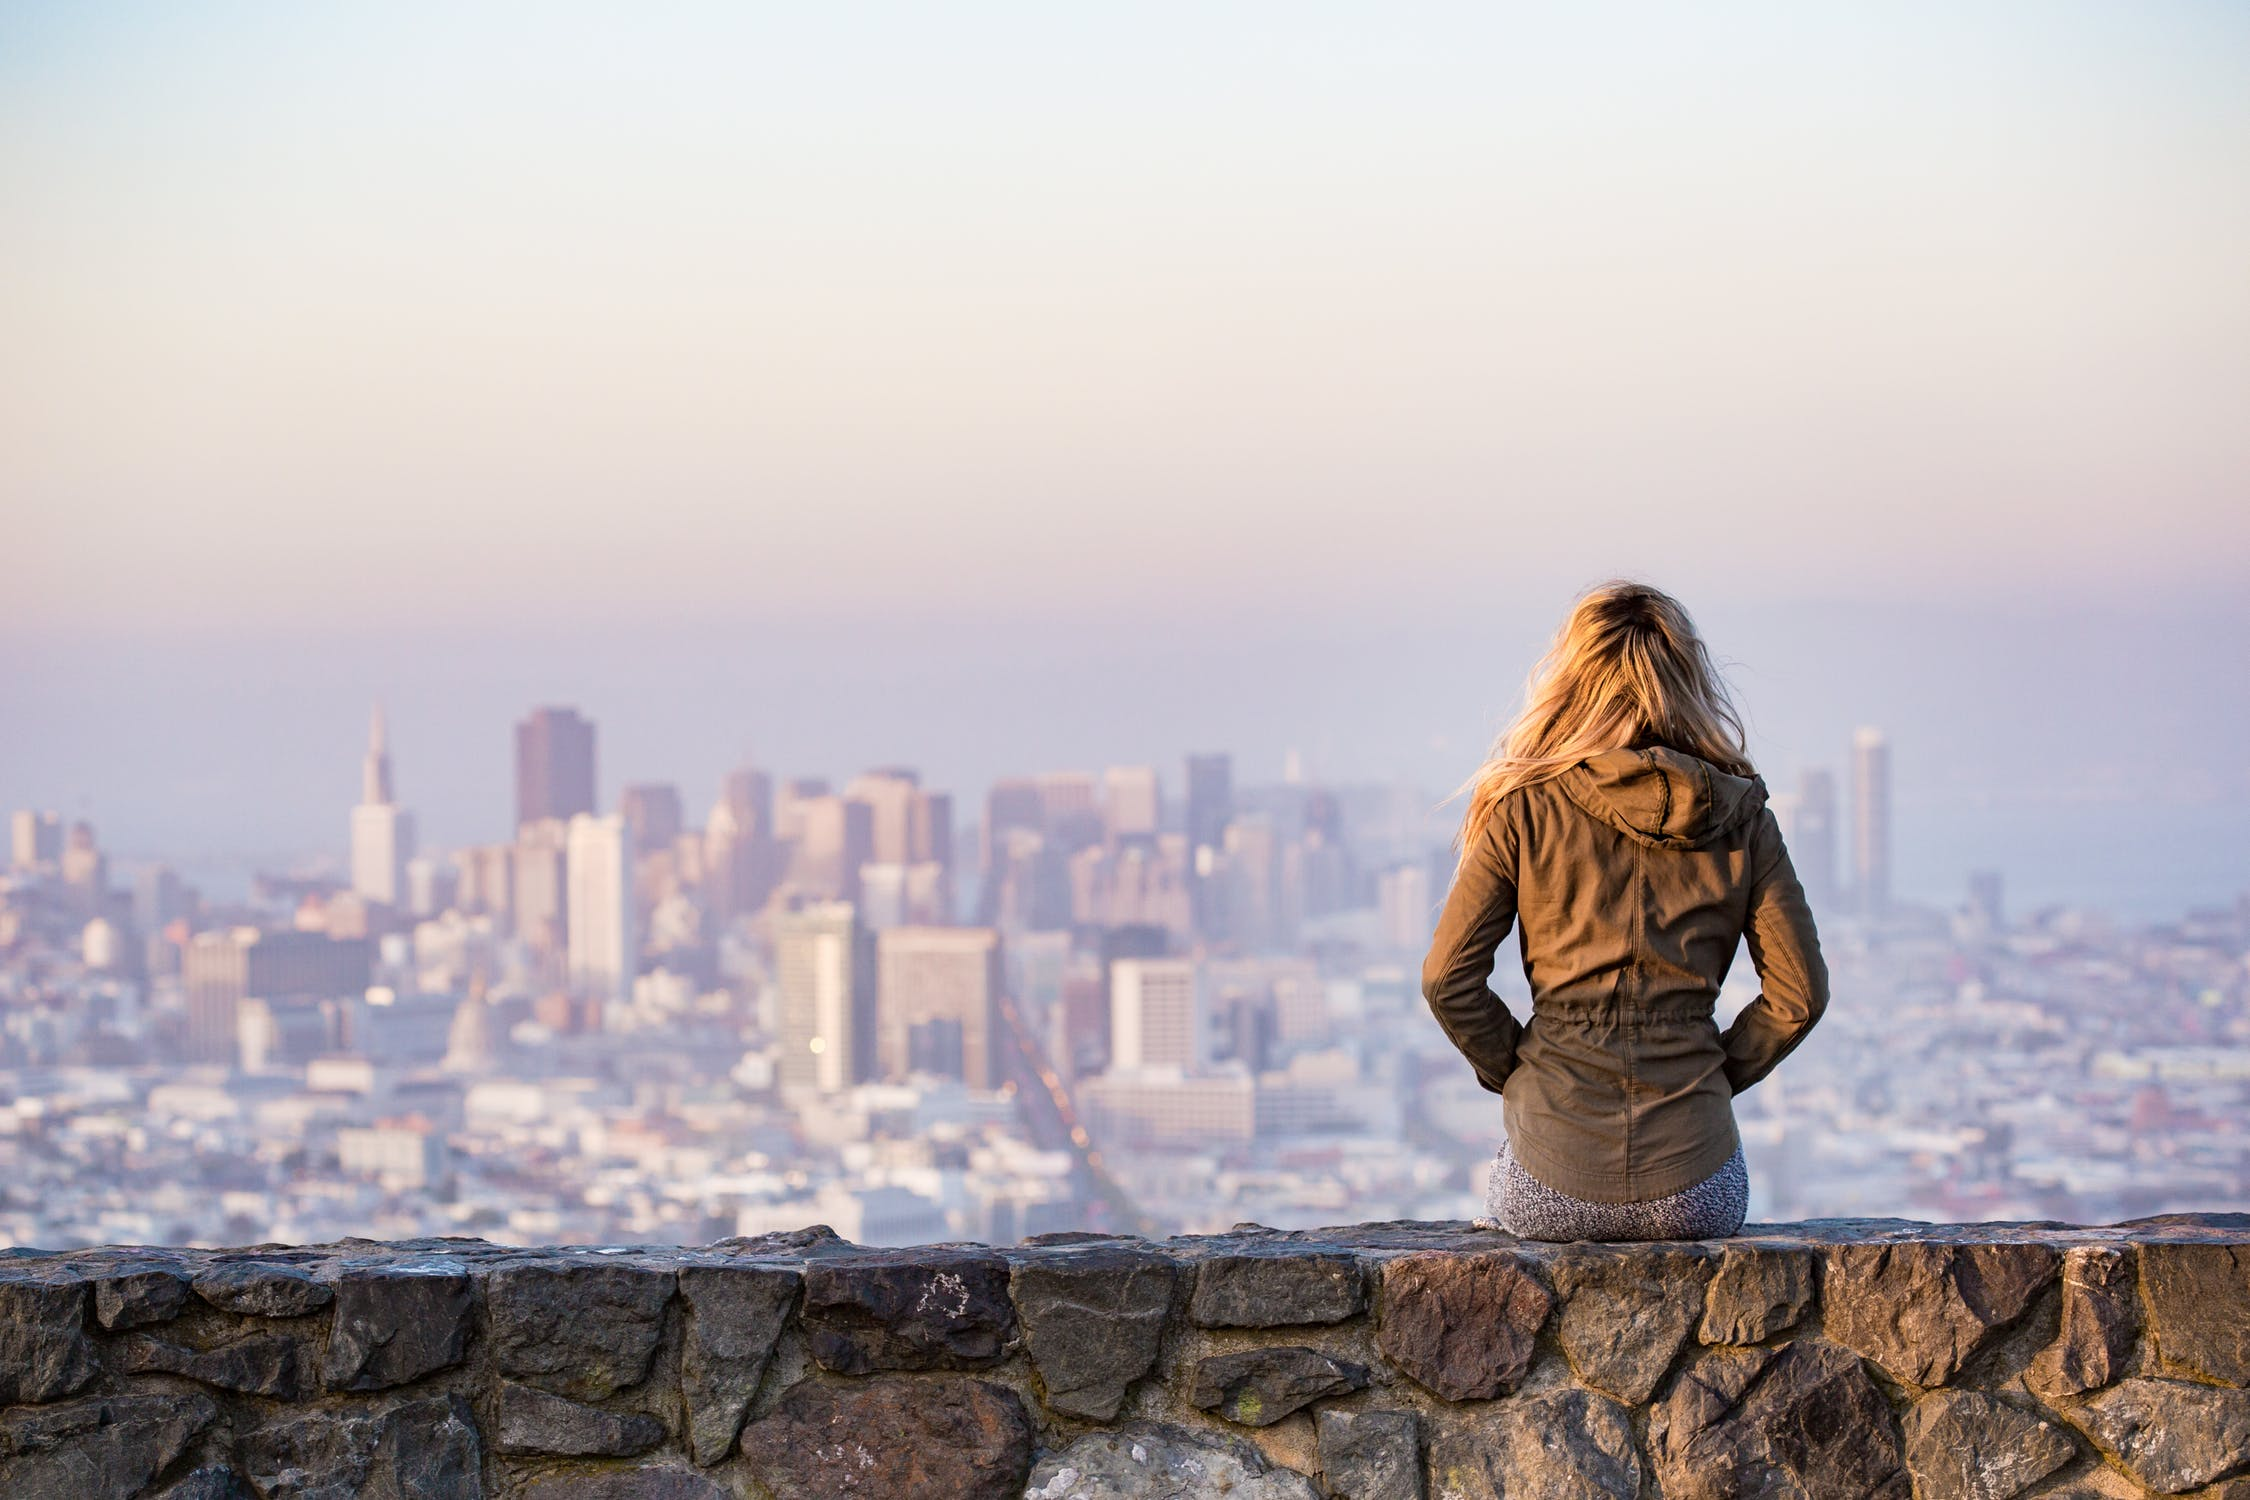 Young woman alone staring at the city